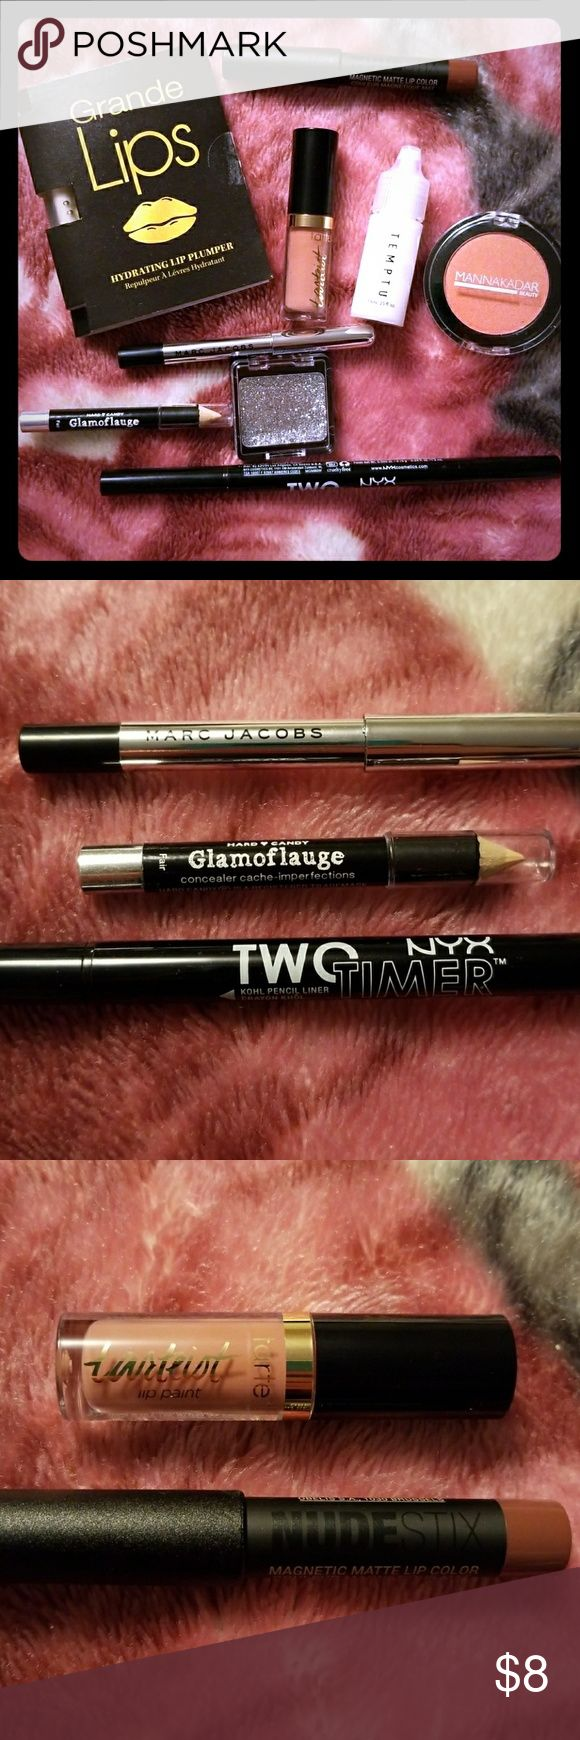 Makeup Bundle Grande Lips Hydrating Lip Plumper (new)  Temptu Base Smooth & Matte Primer (new) Manna Kadar Beauty Blush in Paradise Blush Wet N Wild Glitter Eyeshadow in Spiked (only swatched)  NYX Two Timer Kohl Pencil Liner and Felt Tip Liner in Jet Black (only used once)  Hard Candy Glamoflauge Pencil Concealer in Ivory (new)  Marc Jacobs Highliner Gel Crayon in Black (new)  NUDE STIX Magnetic Matte Lip Color in Greystone (new)  Tarte Tareist Lip Paint in Birthday Suit (new) Makeup